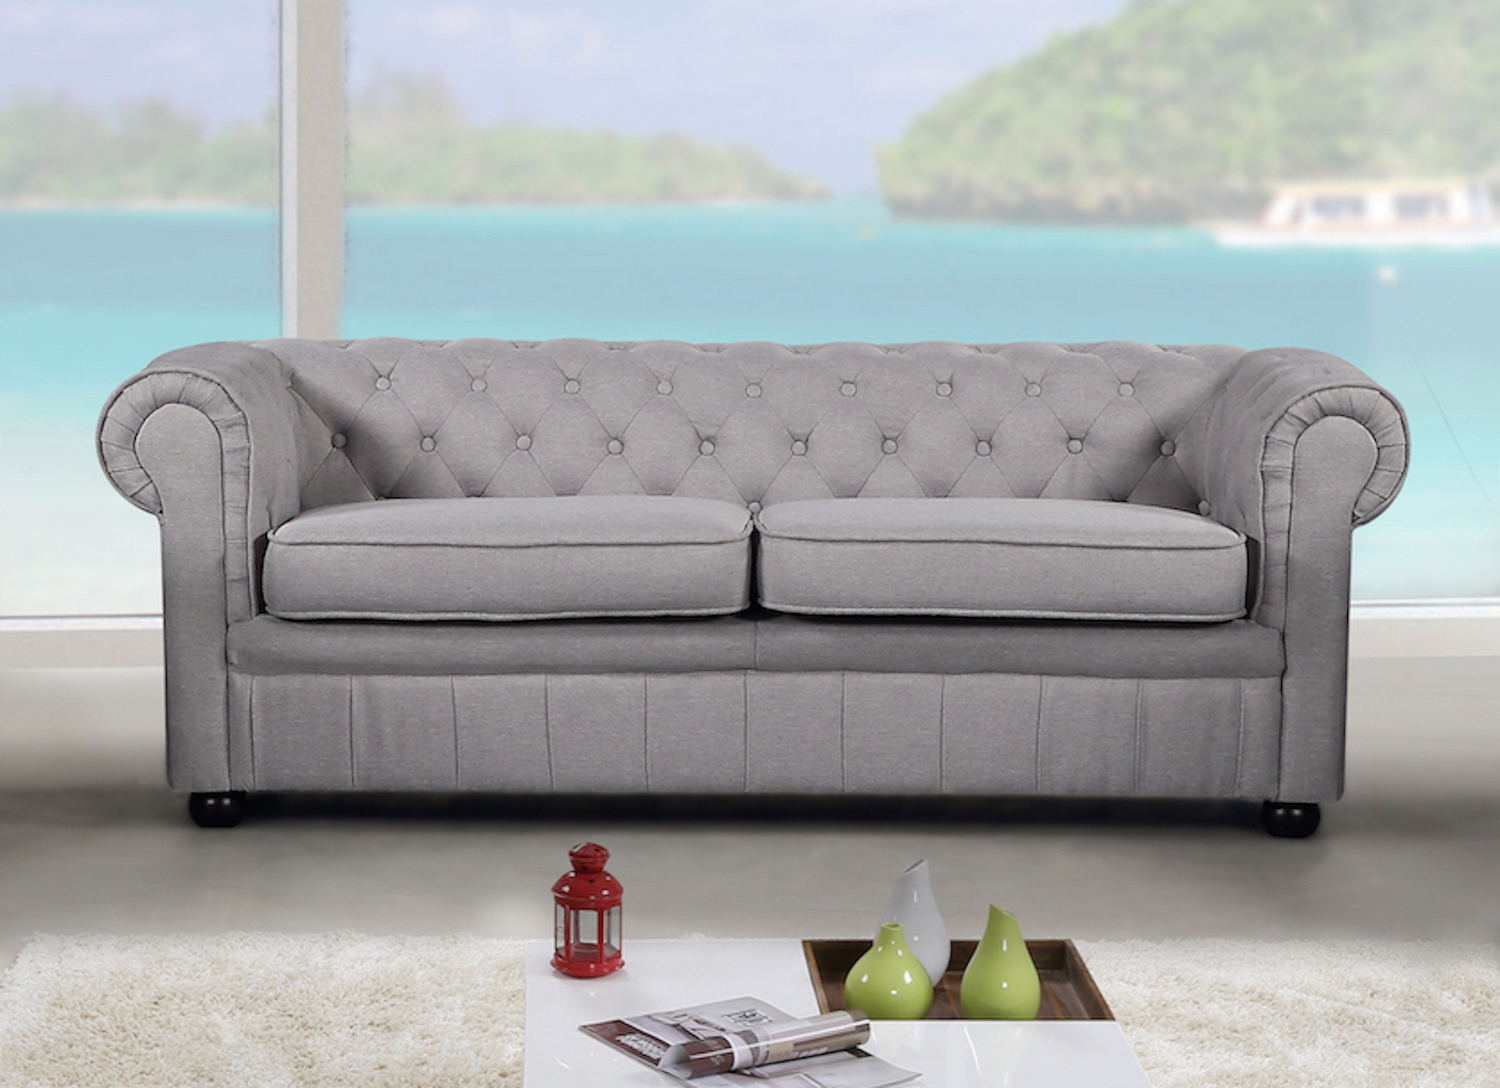 Modern Chesterfield Style Sofa – Light Grey Fabric Throughout Ludovic Contemporary Sofas Light Gray (View 11 of 15)